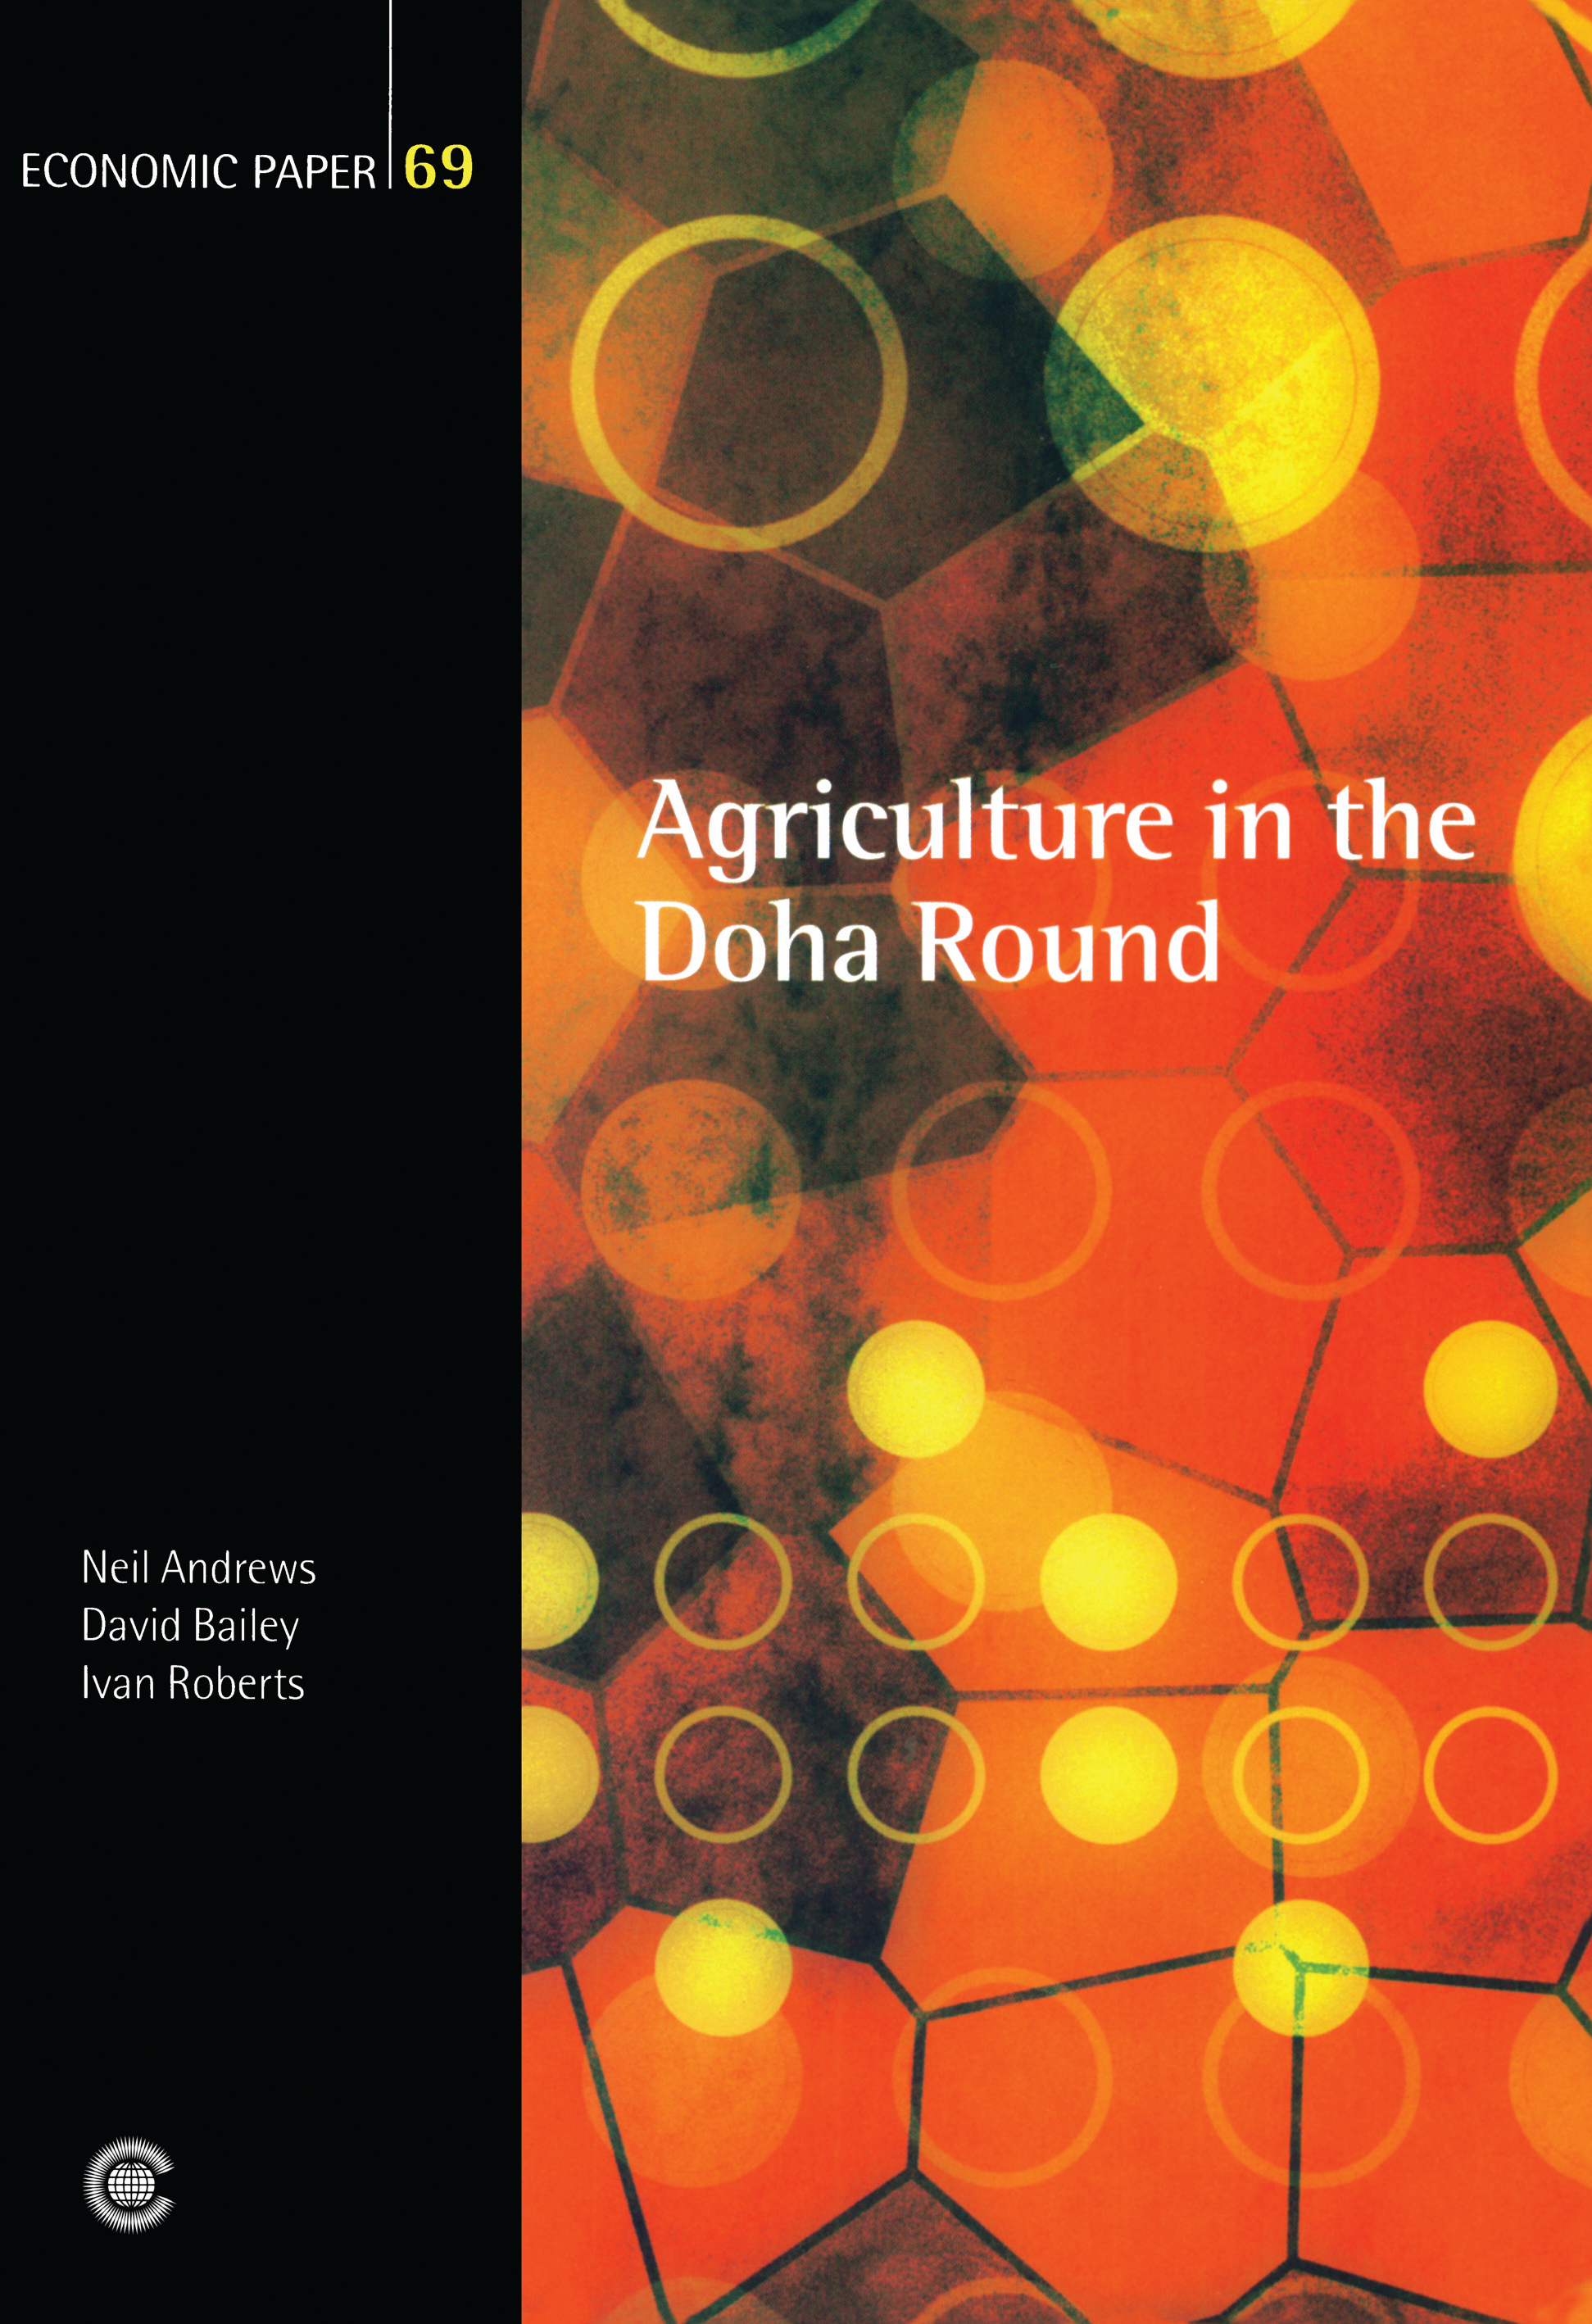 uruguay doha round The conversion of gatt into this organization was partly attributable to the need for the achieved agreement to touch on sectors and issues, not previously covered by the original gatt agriculture was among the latter sectors 3 the agricultural sector within the multilateral trade negotiations up to the uruguay round, the.